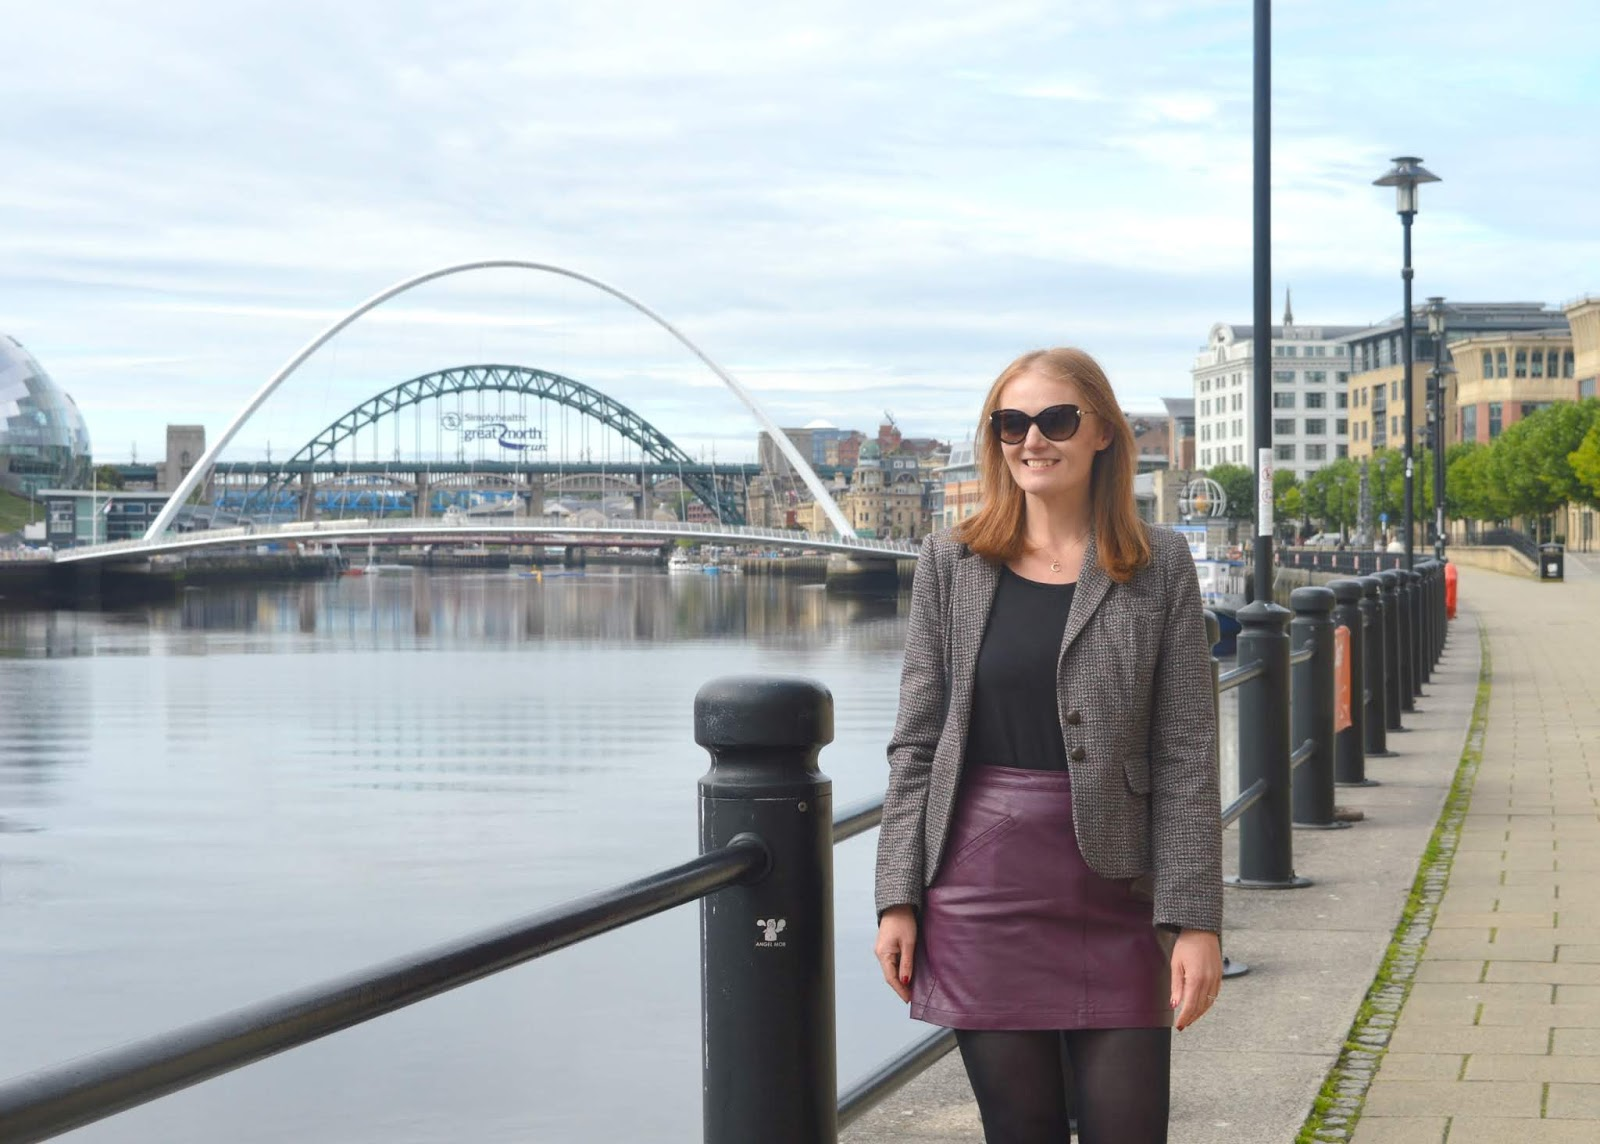 How to spend a day on your own in Newcastle